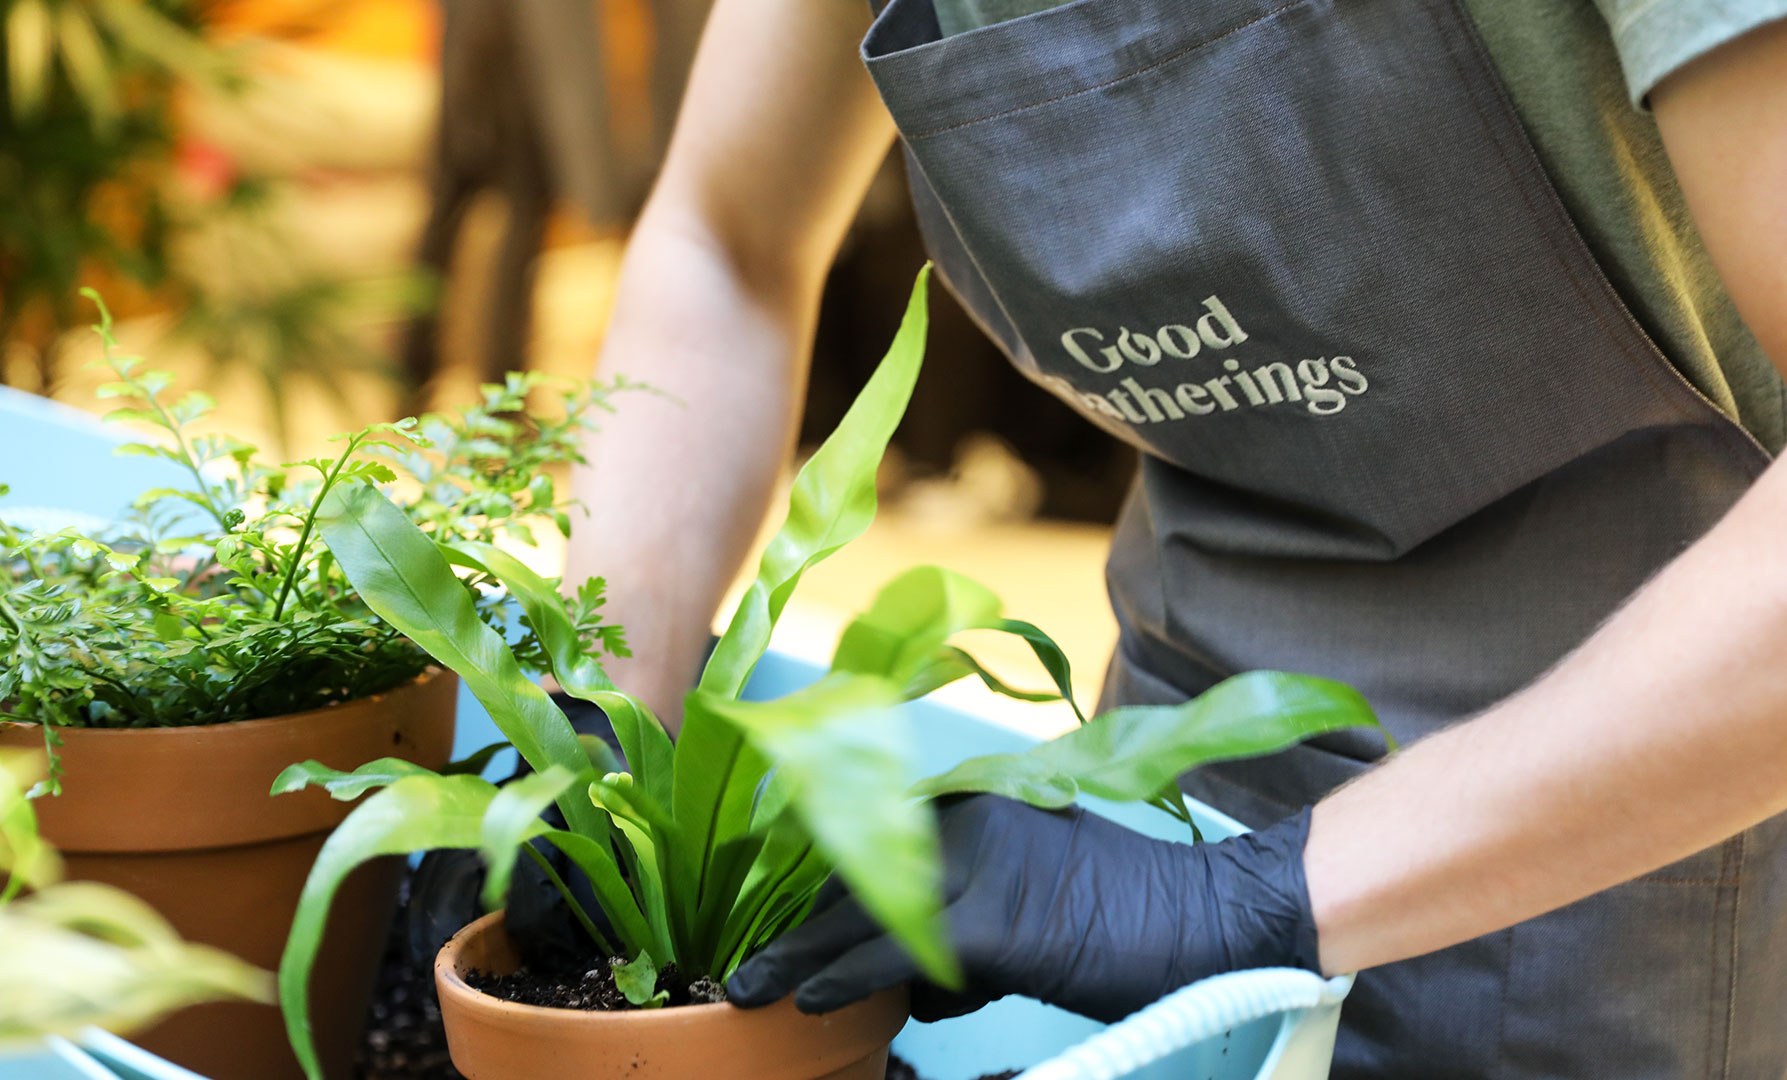 Good Gatherings: How to Houseplant